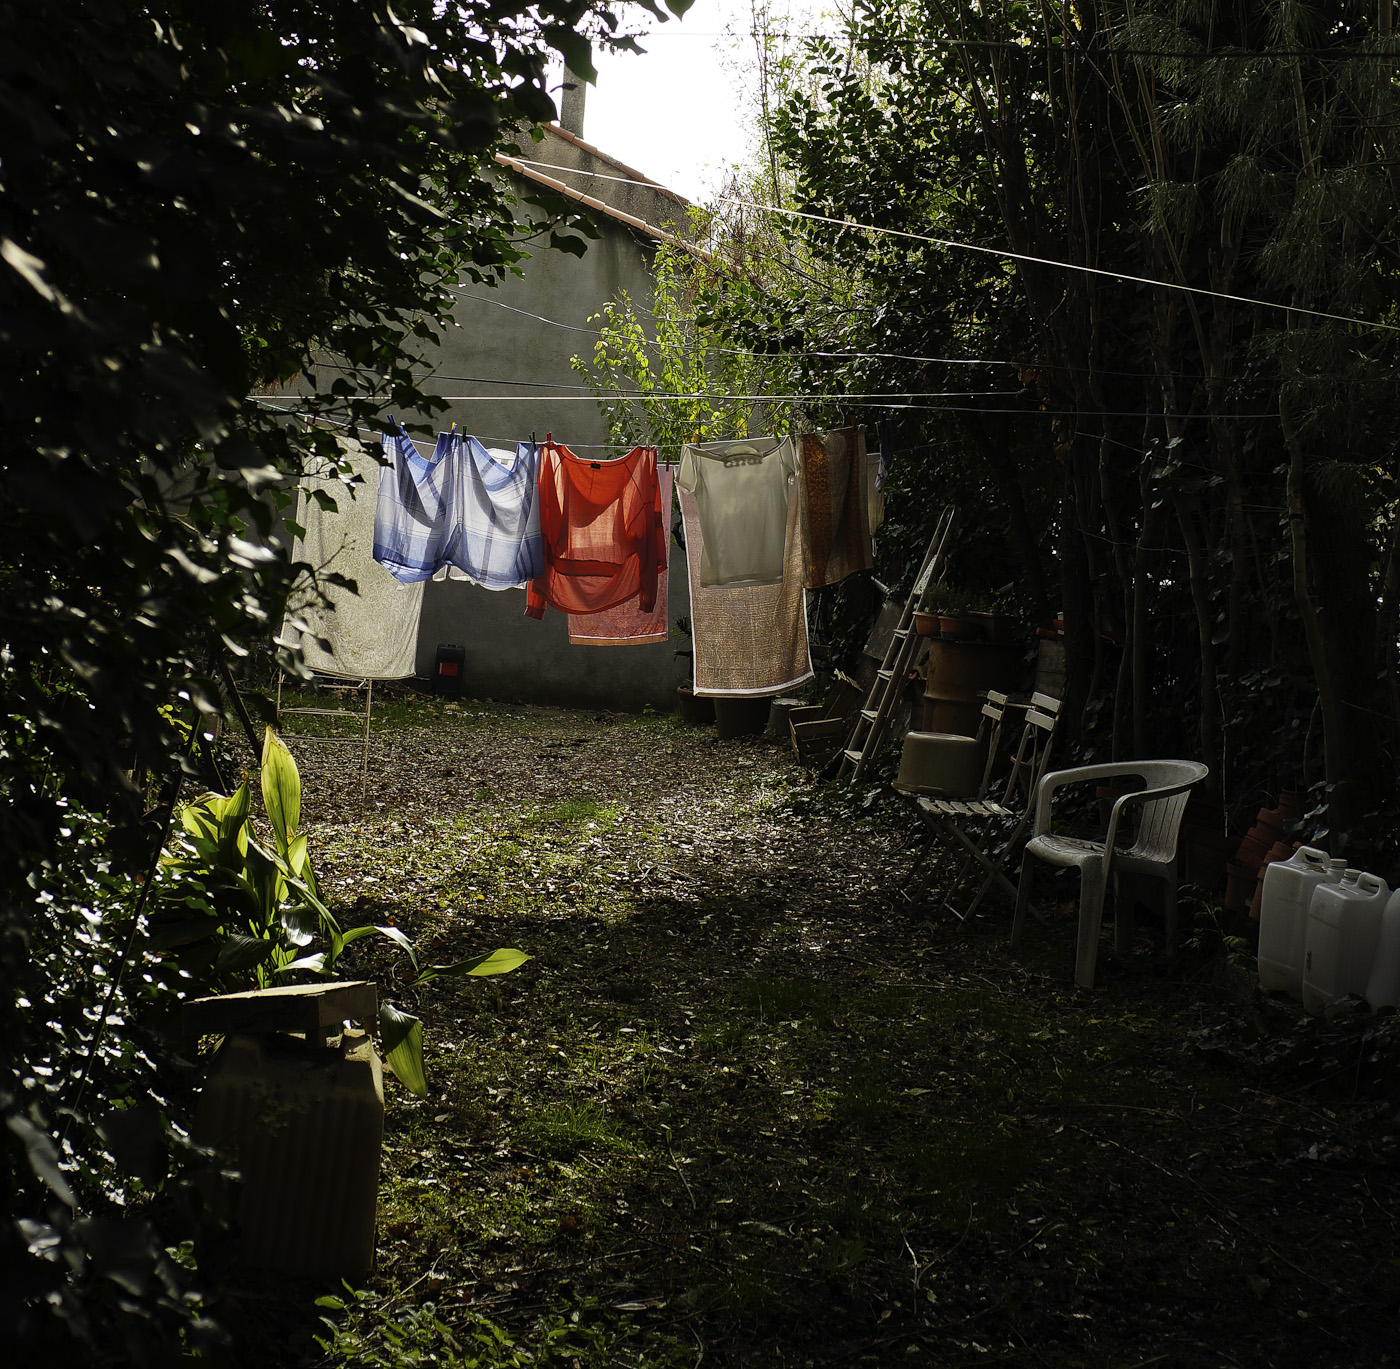 Clothes drying in full sun, Sony Nex-5N & Zeiss ZM Biogon 25